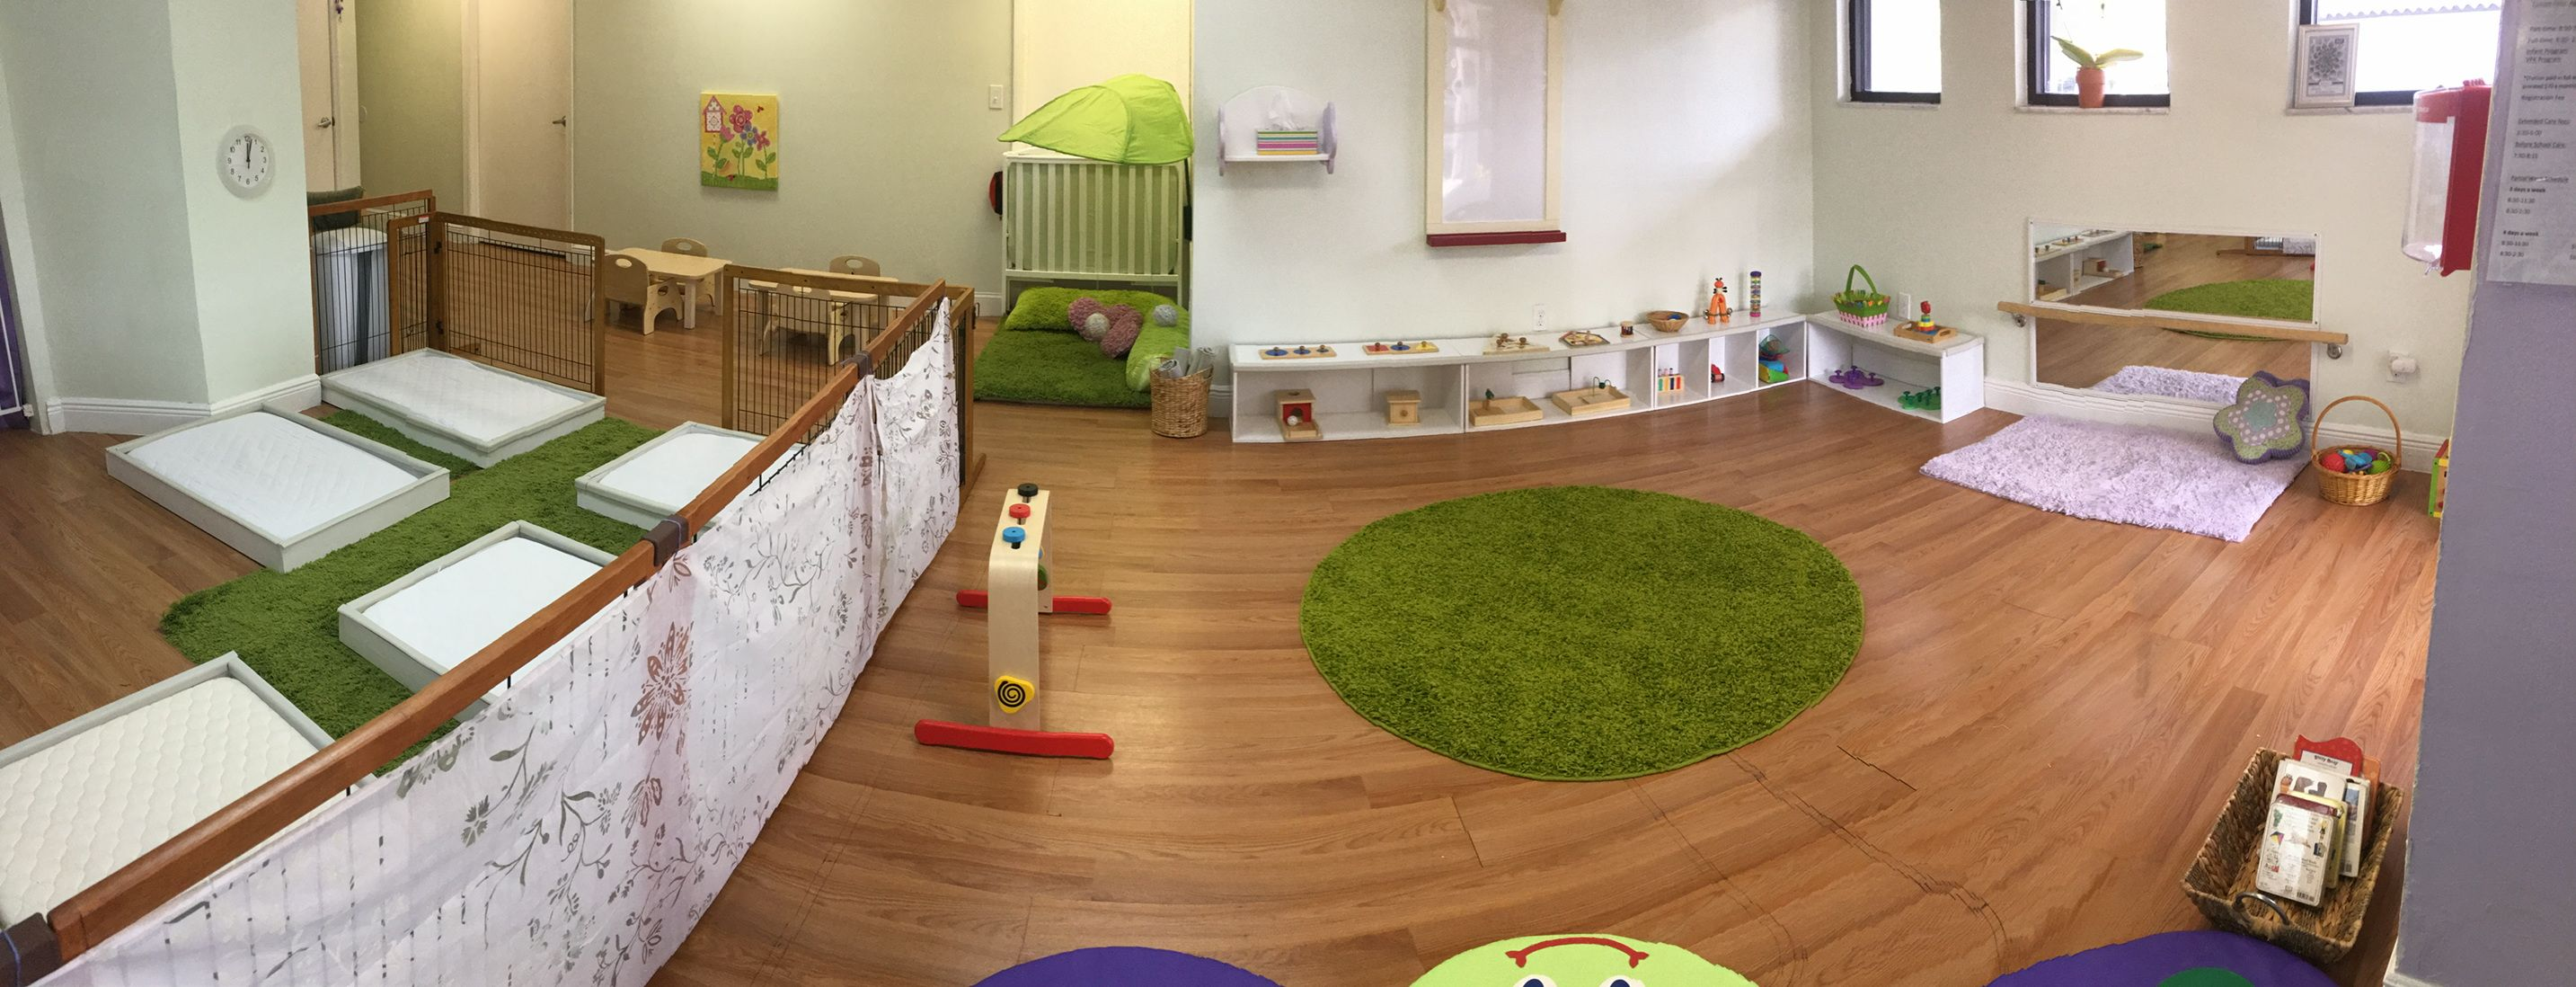 Image result for montessori infant classroom | Small ...